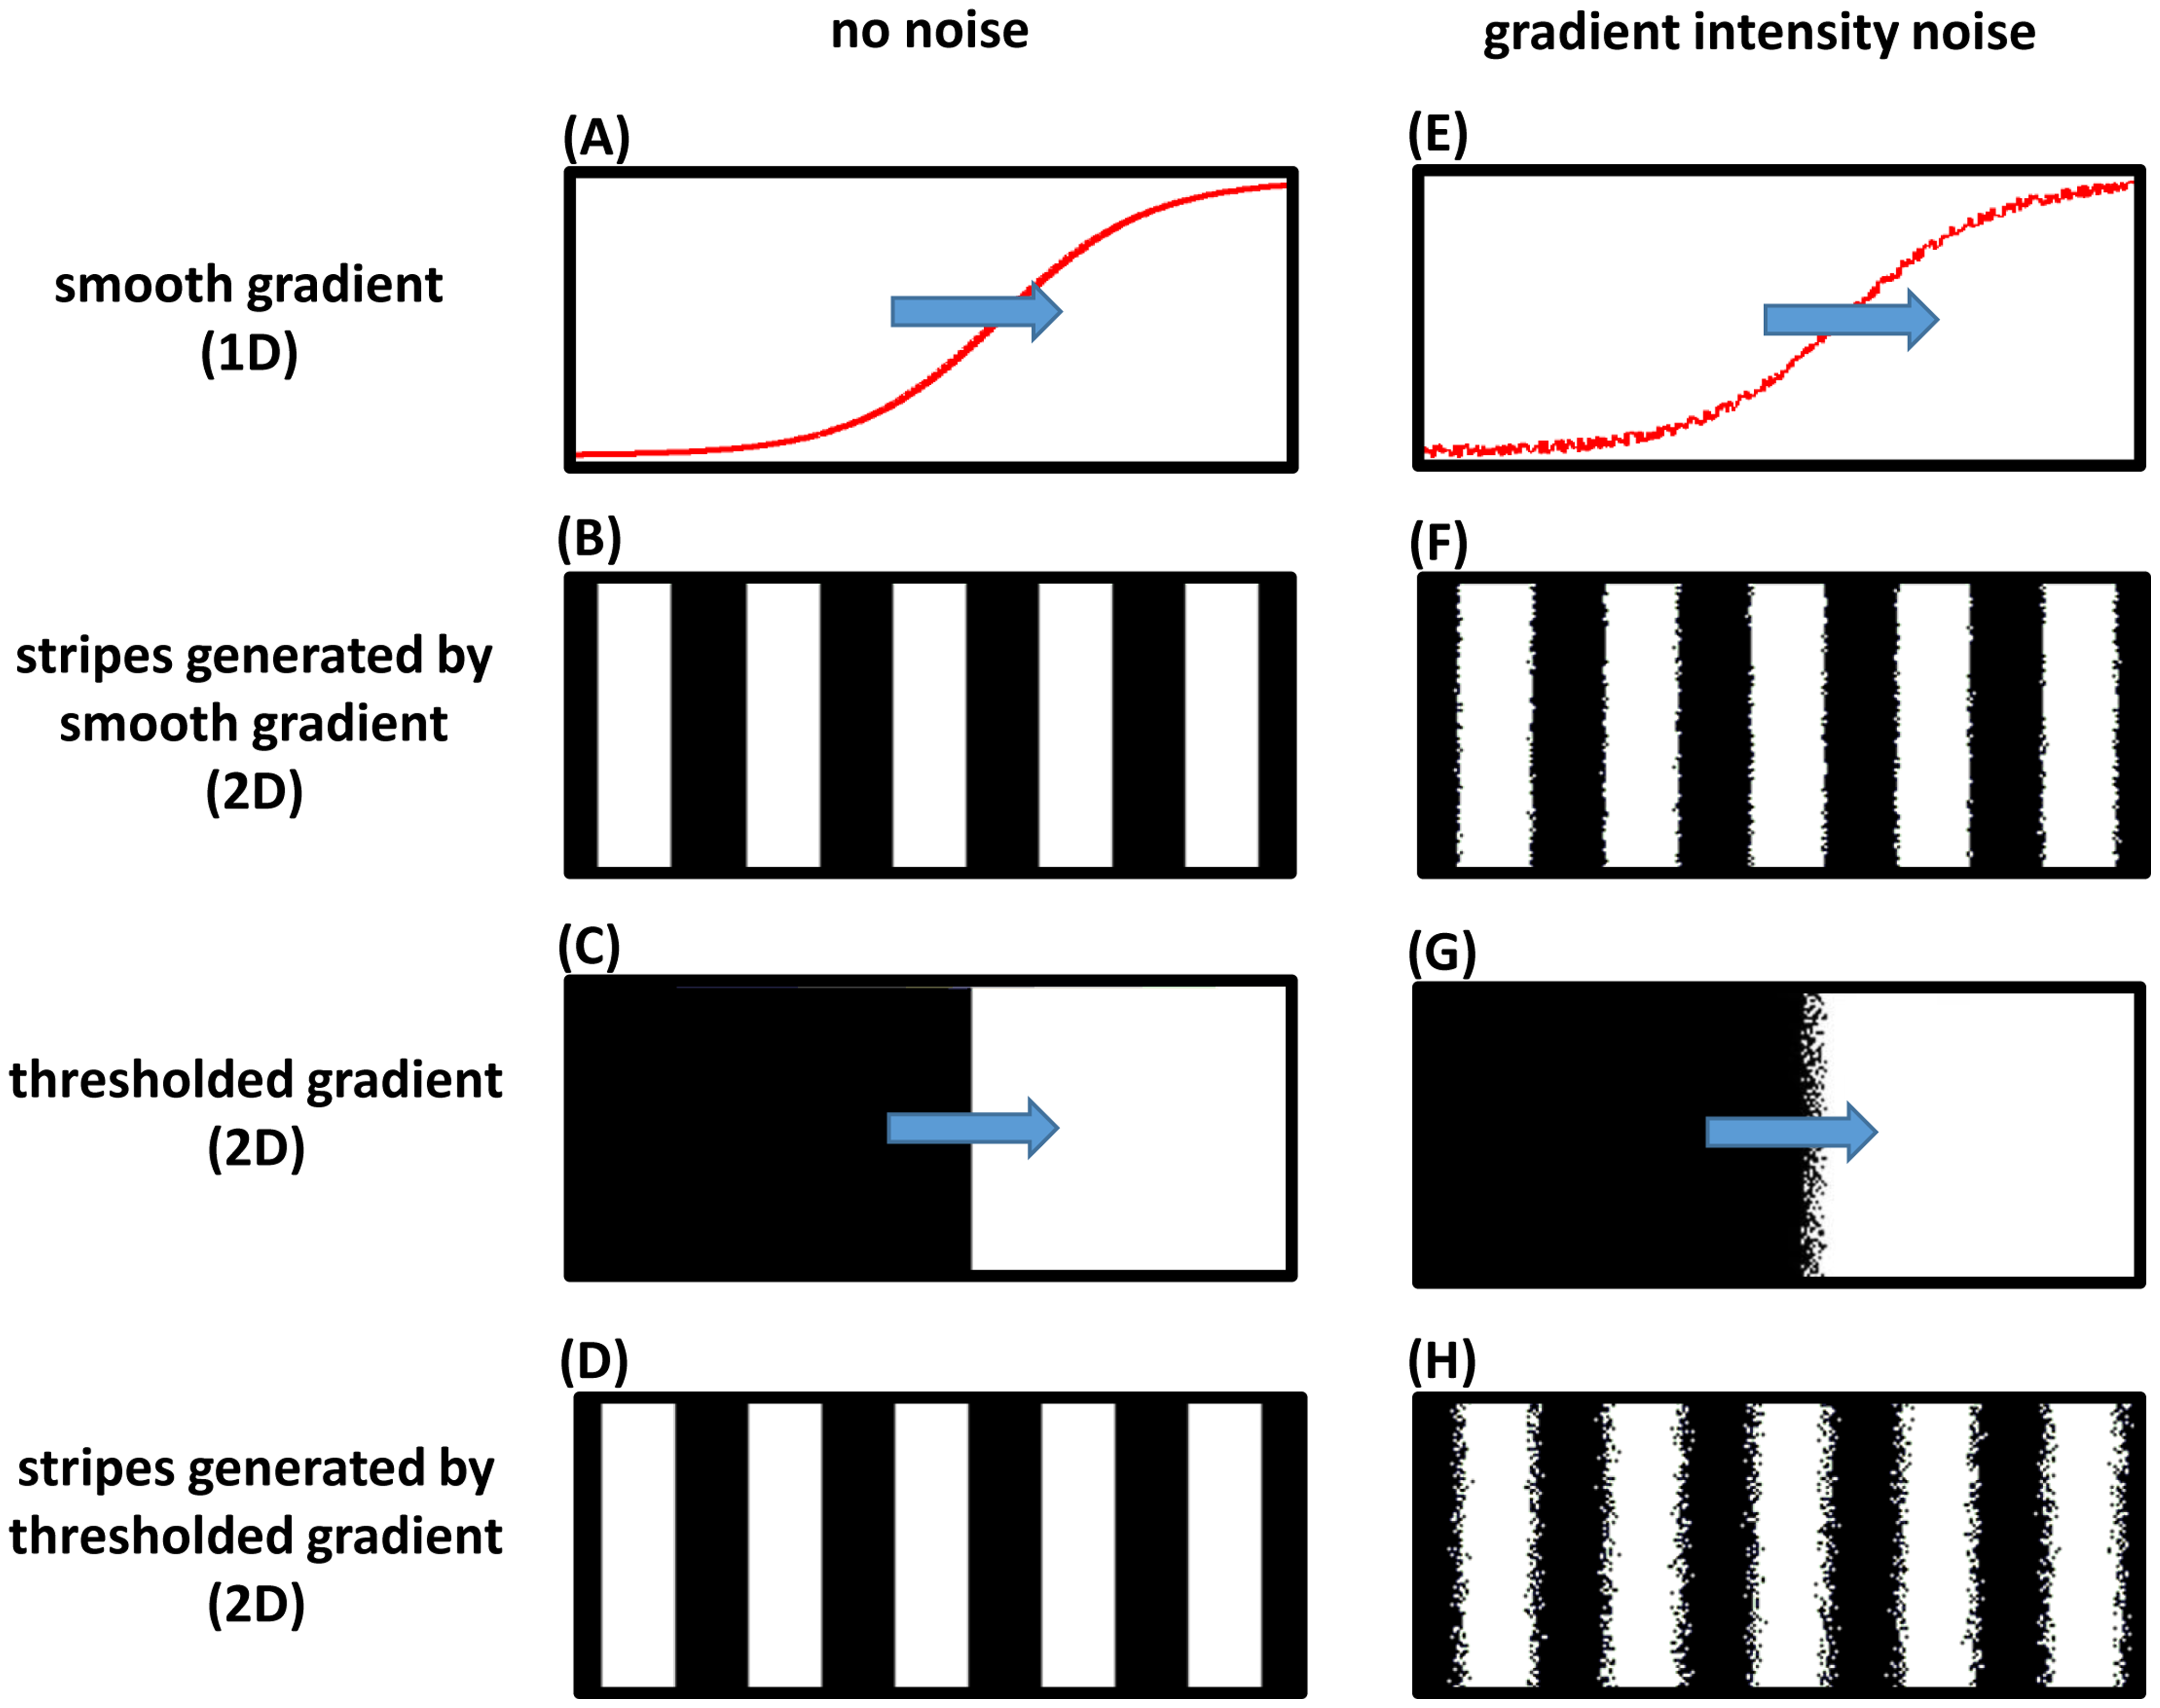 Frequency profile and robustness of the clock-and-wavefront model.